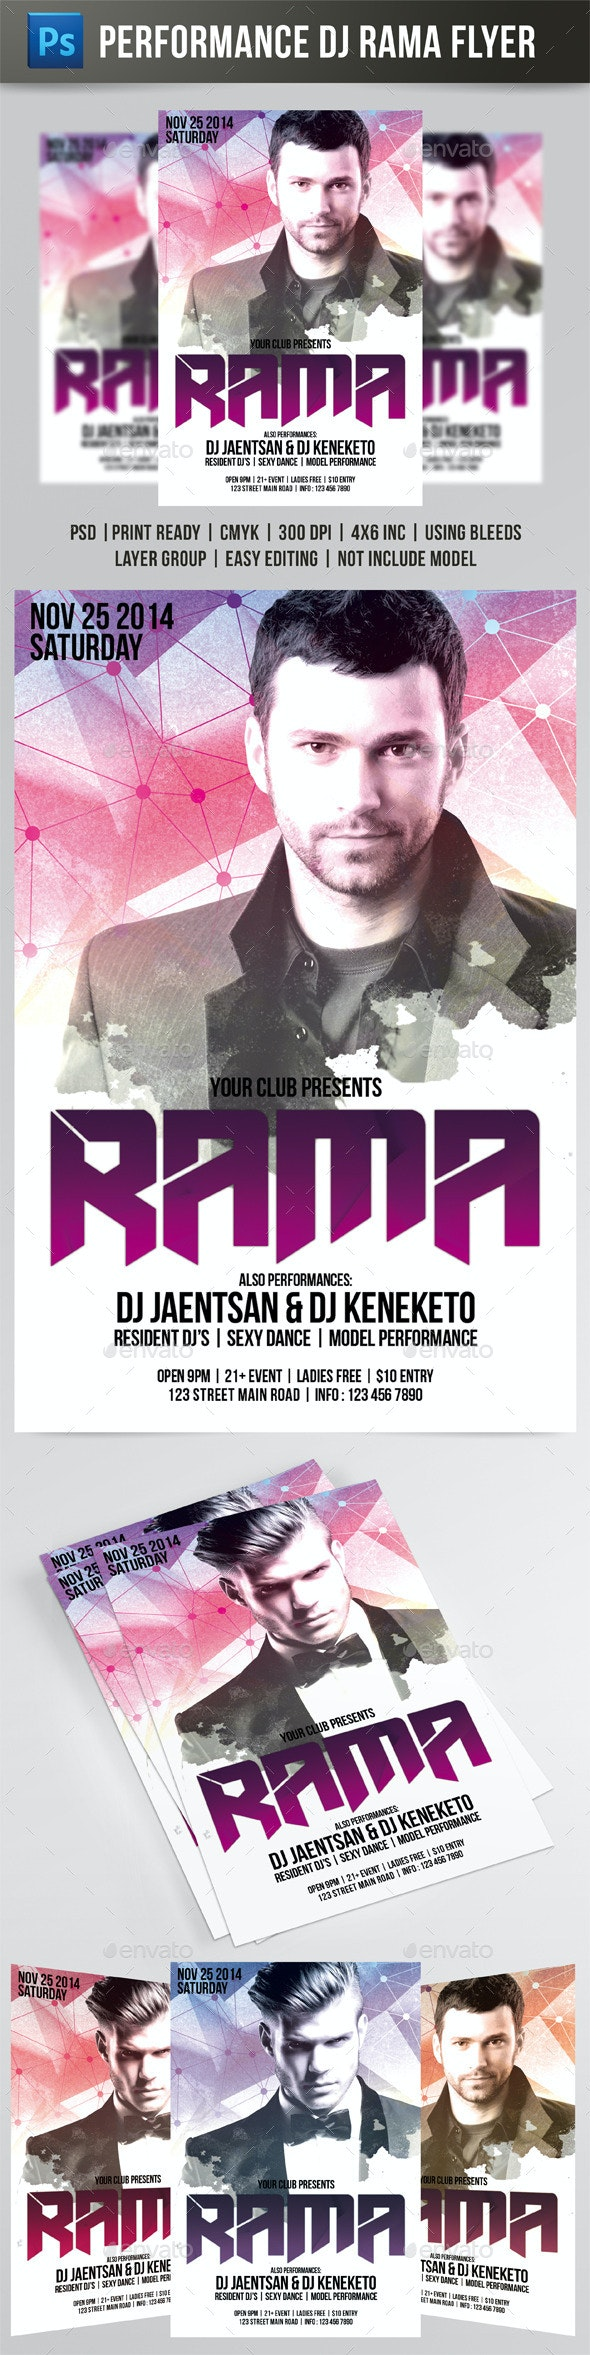 DJ Rama Flyer - Events Flyers